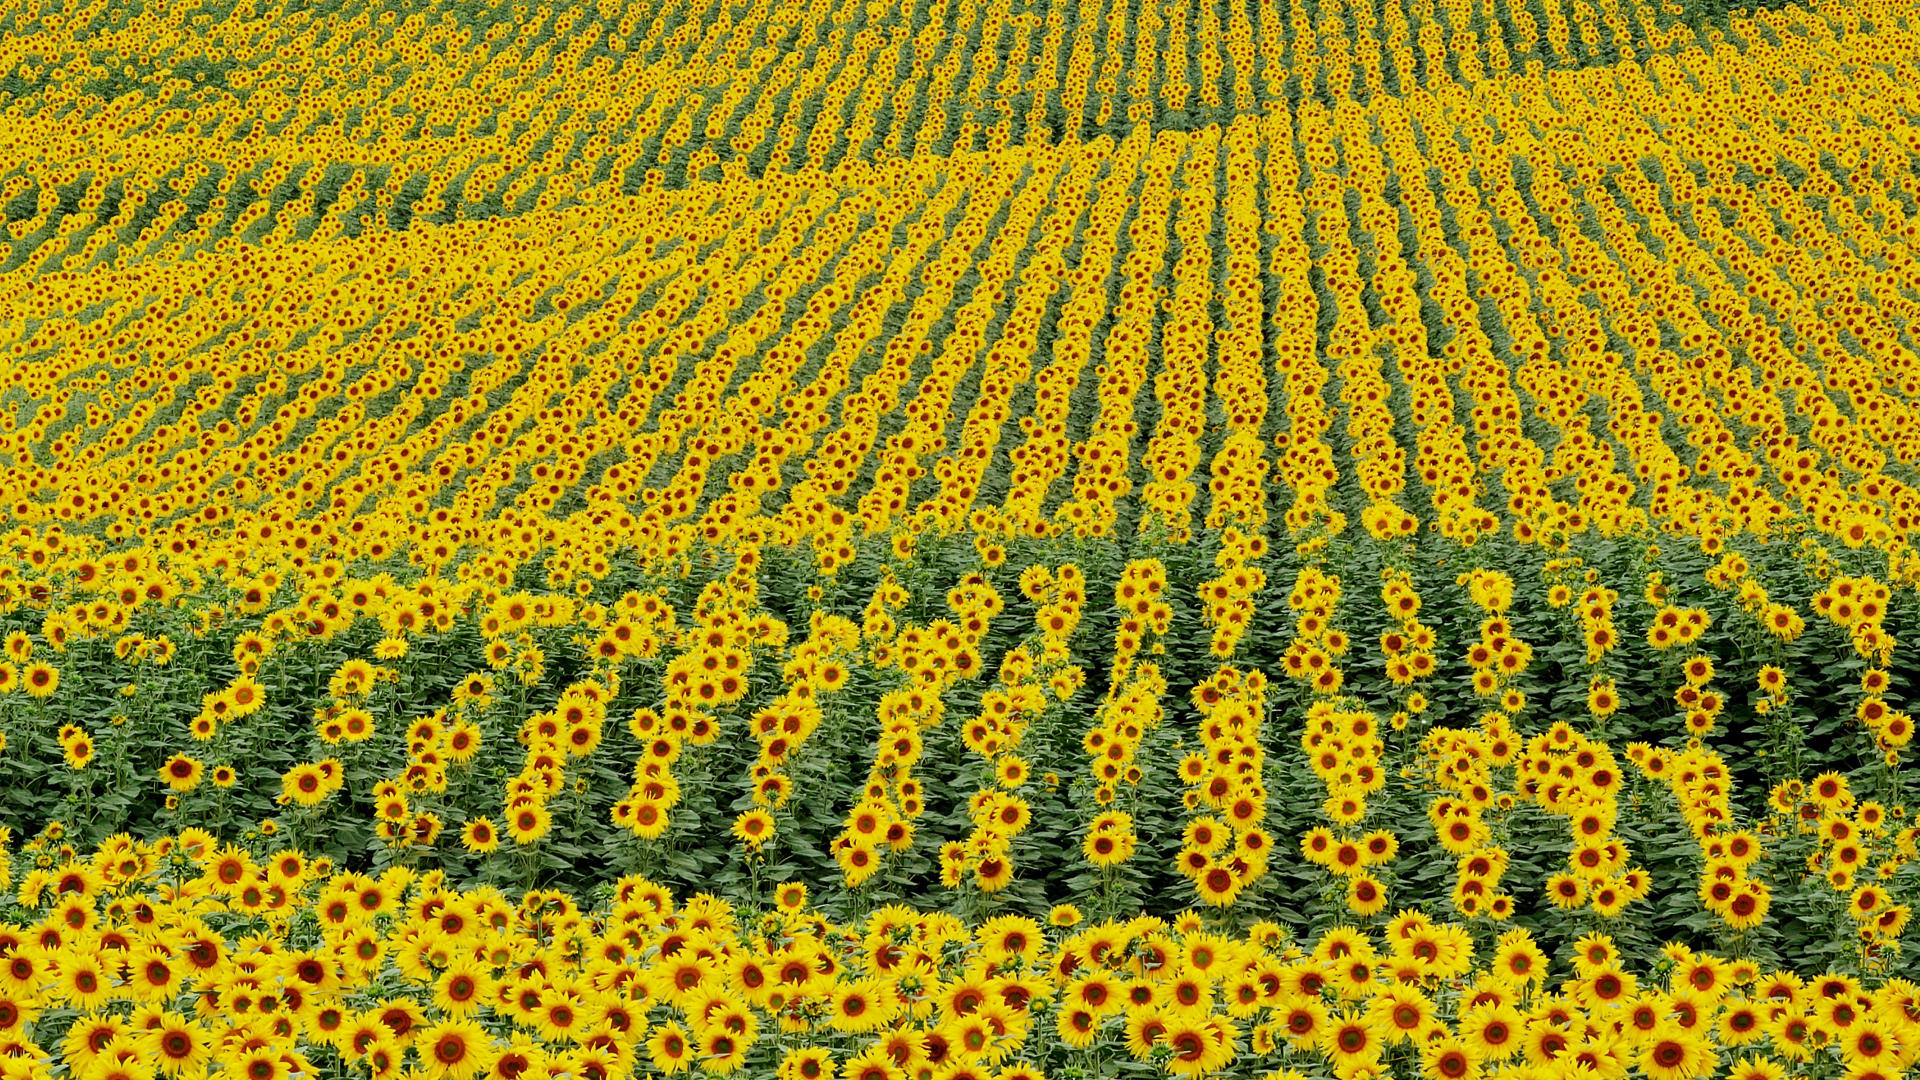 Image Sunflower Field Wallpapers And Stock Photos